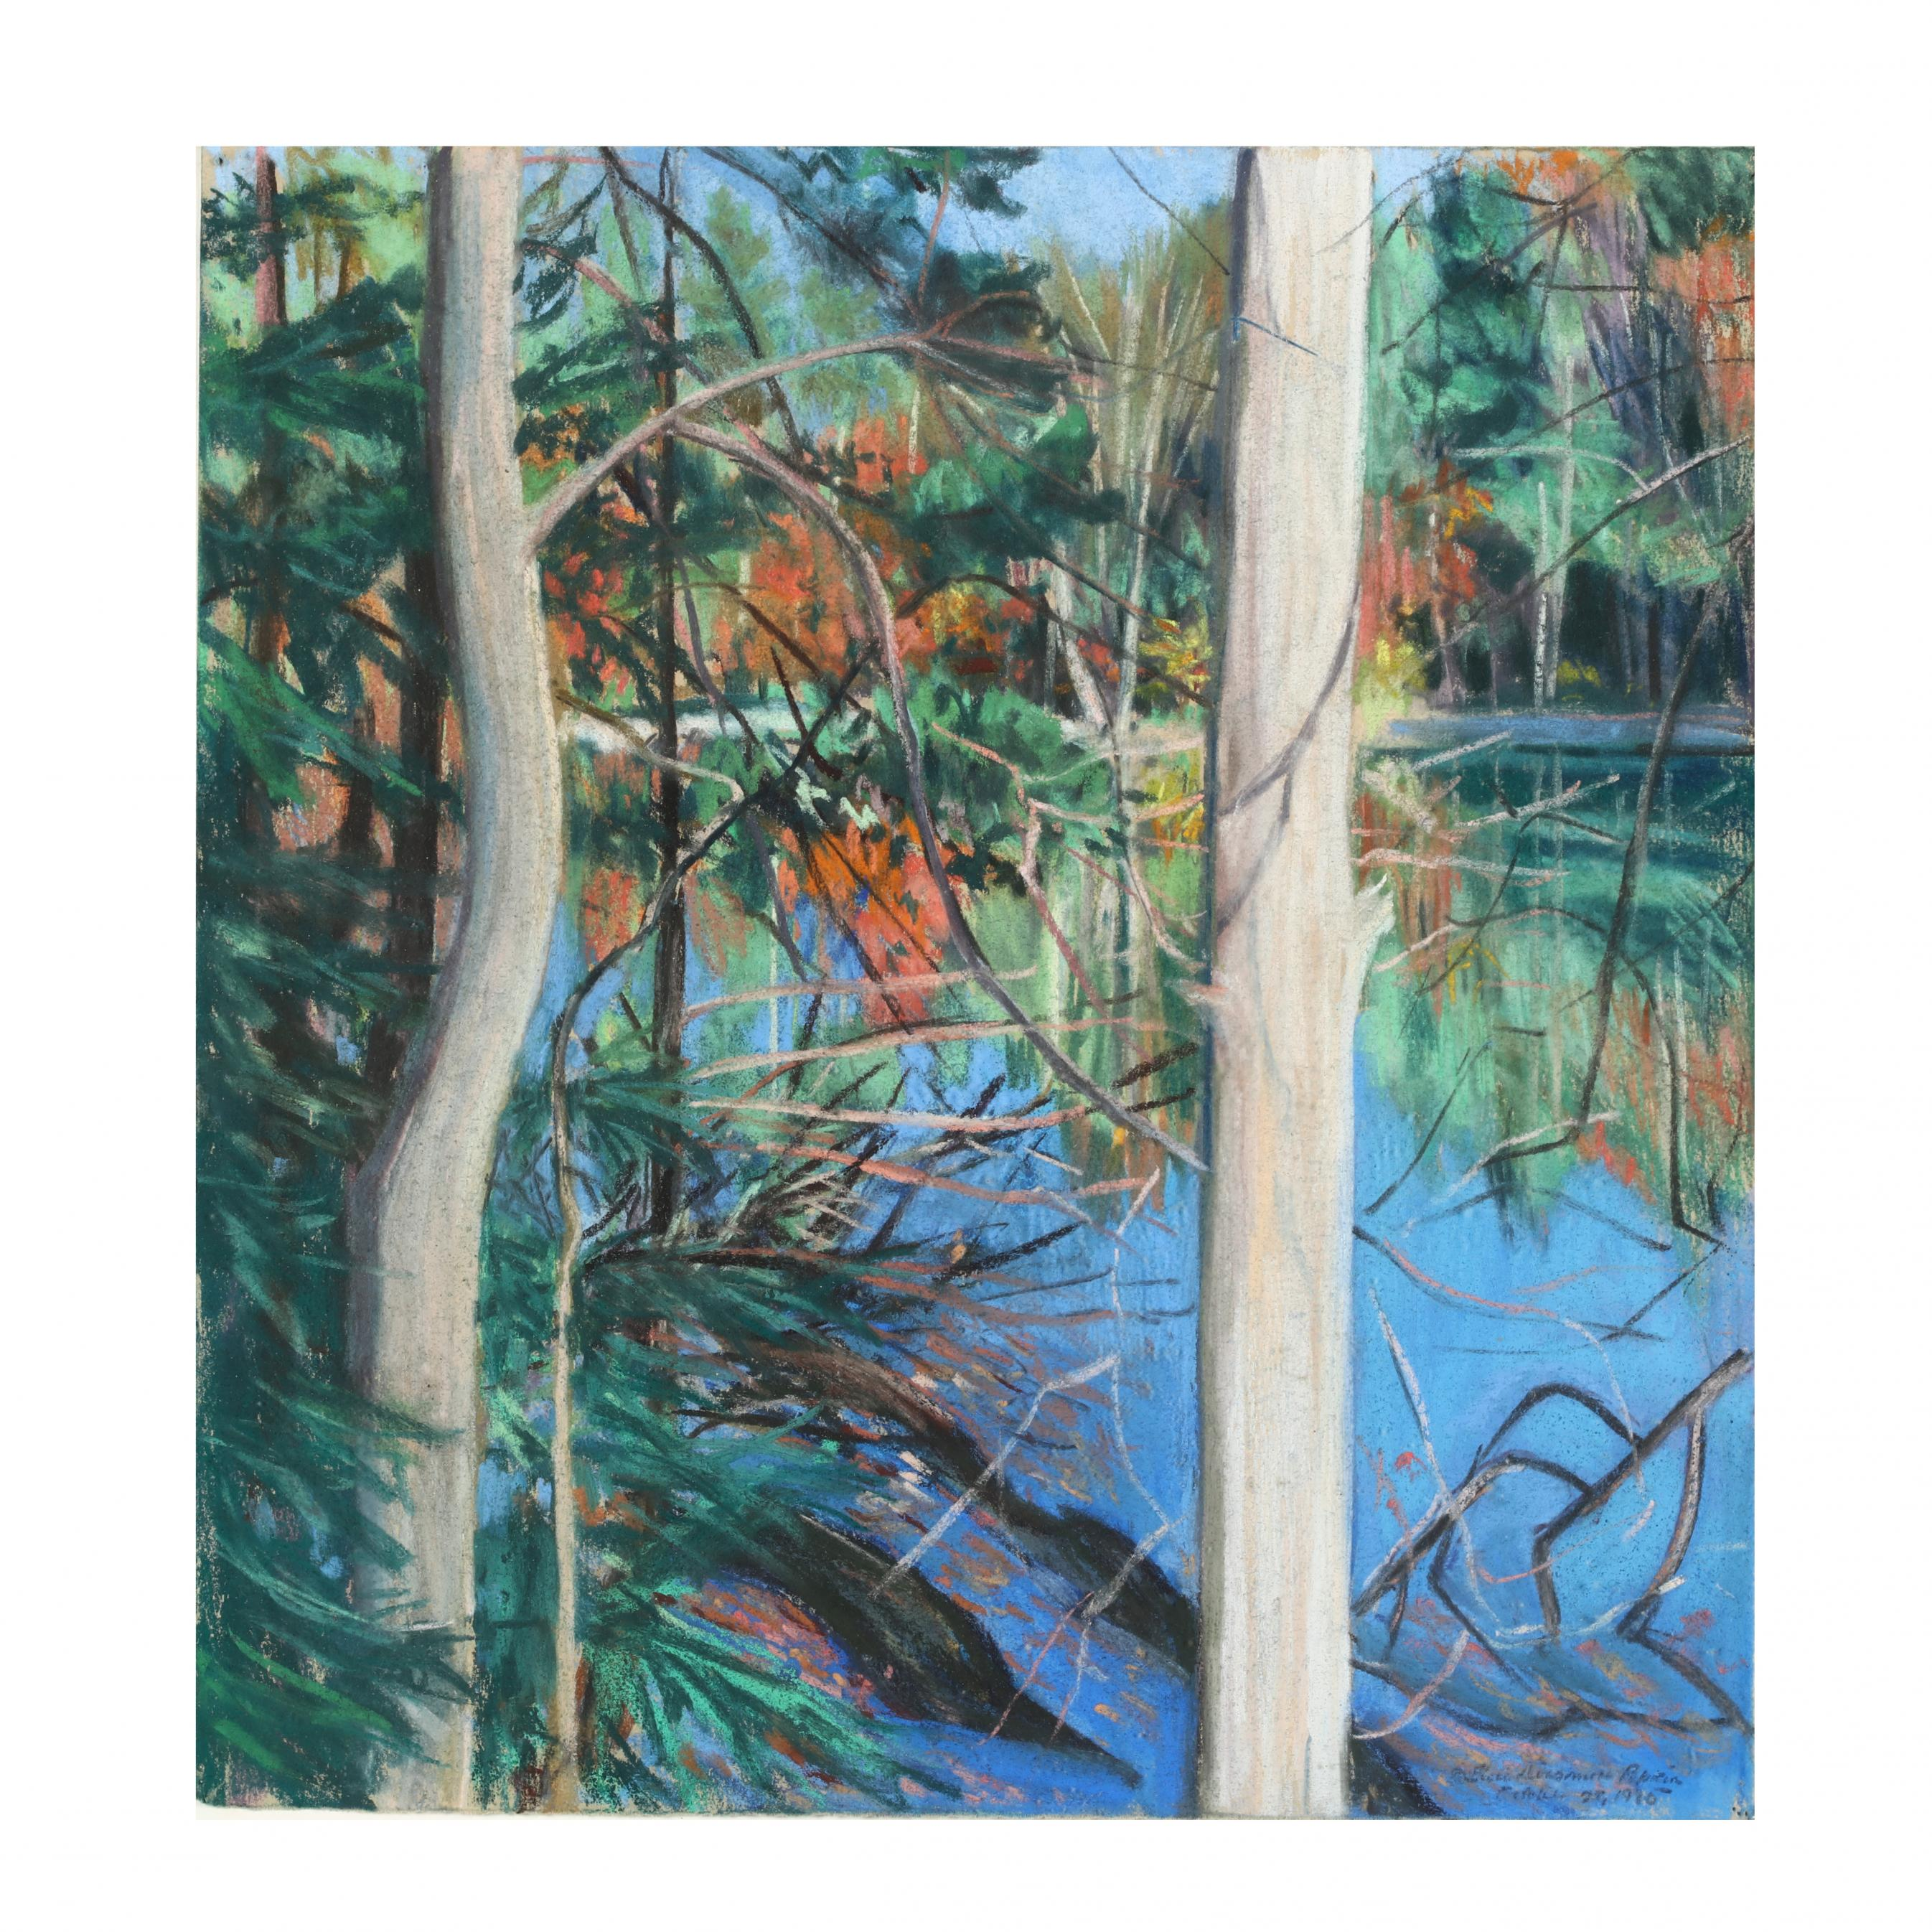 elsie-dinsmore-popkin-nc-ny-1937-2005-i-yaddo-lake-spencer-late-october-i